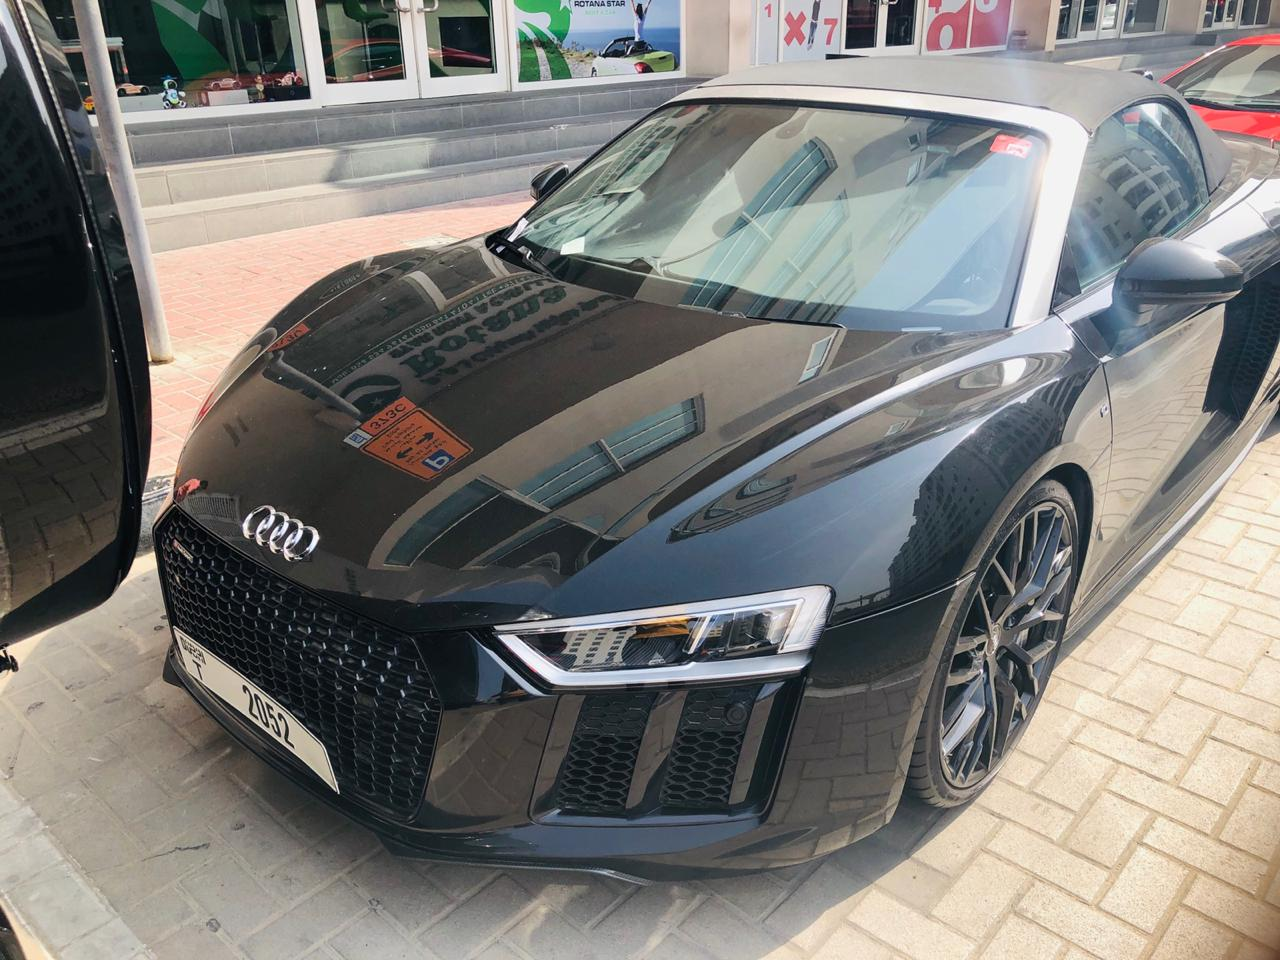 Exterior black soft top convertible audi r8 for rent Dubai UAE overdrive rent a car